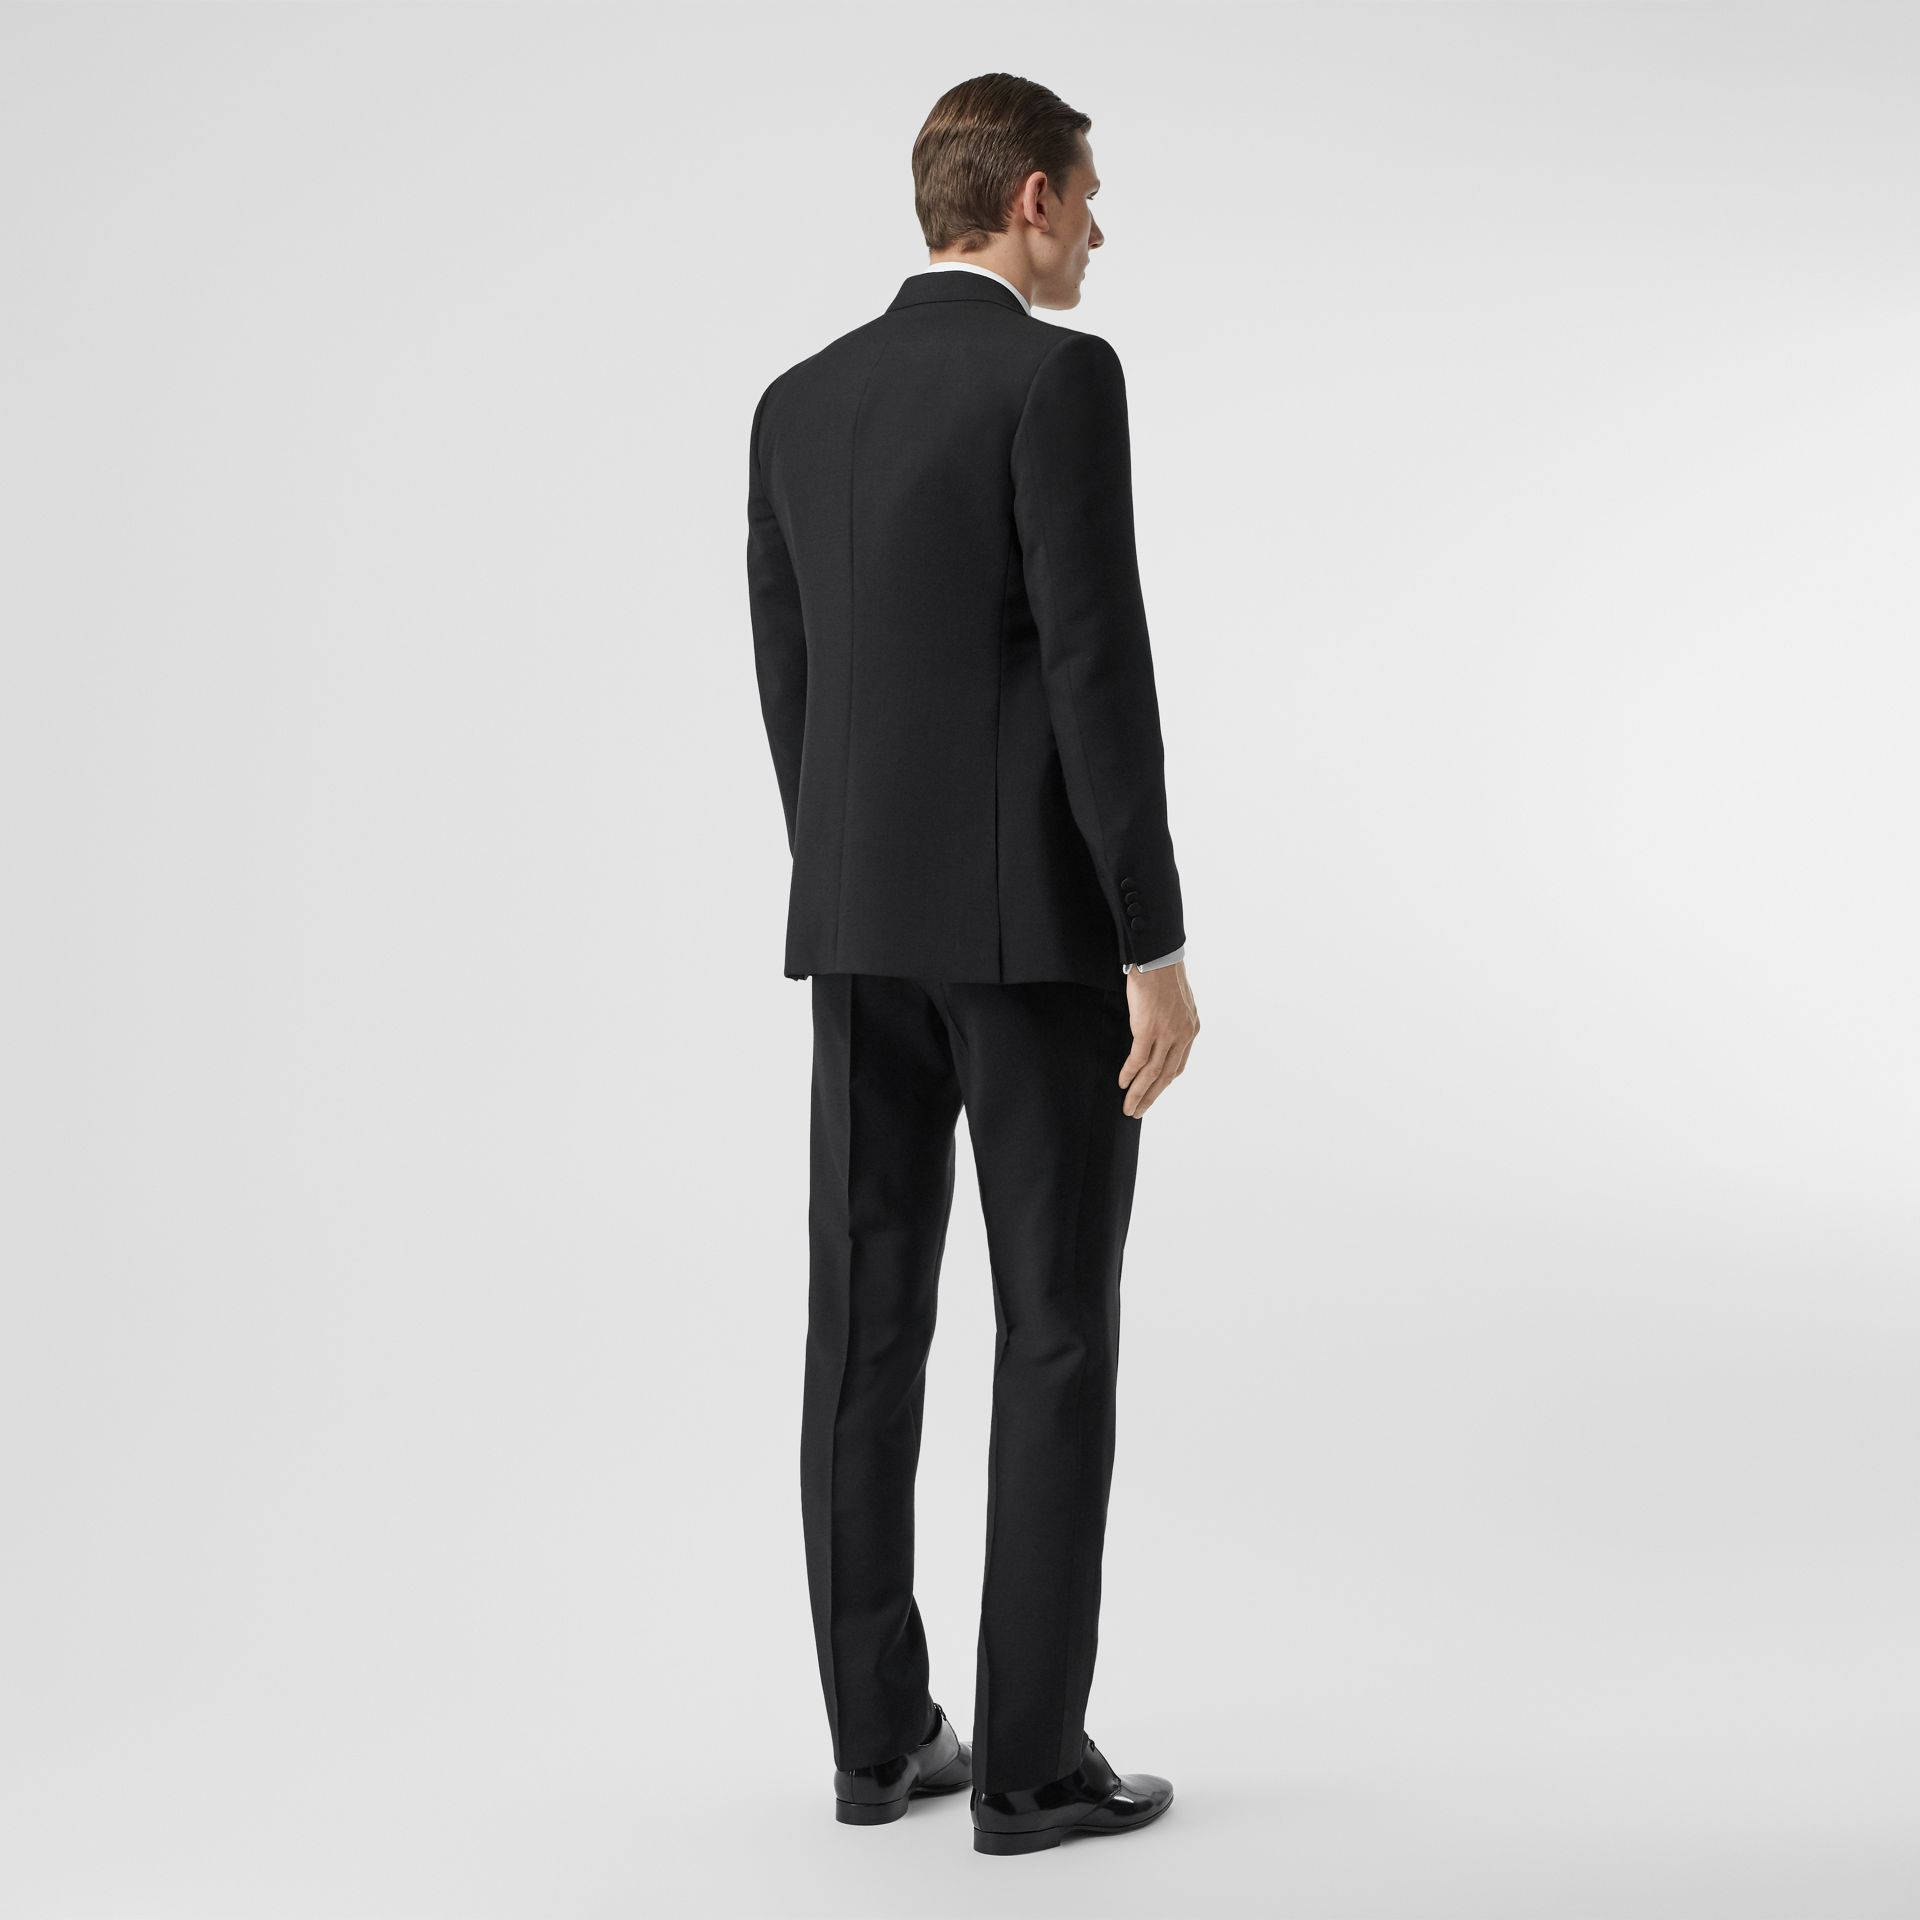 English Fit Mohair Wool Tuxedo in Black - Men | Burberry - gallery image 2